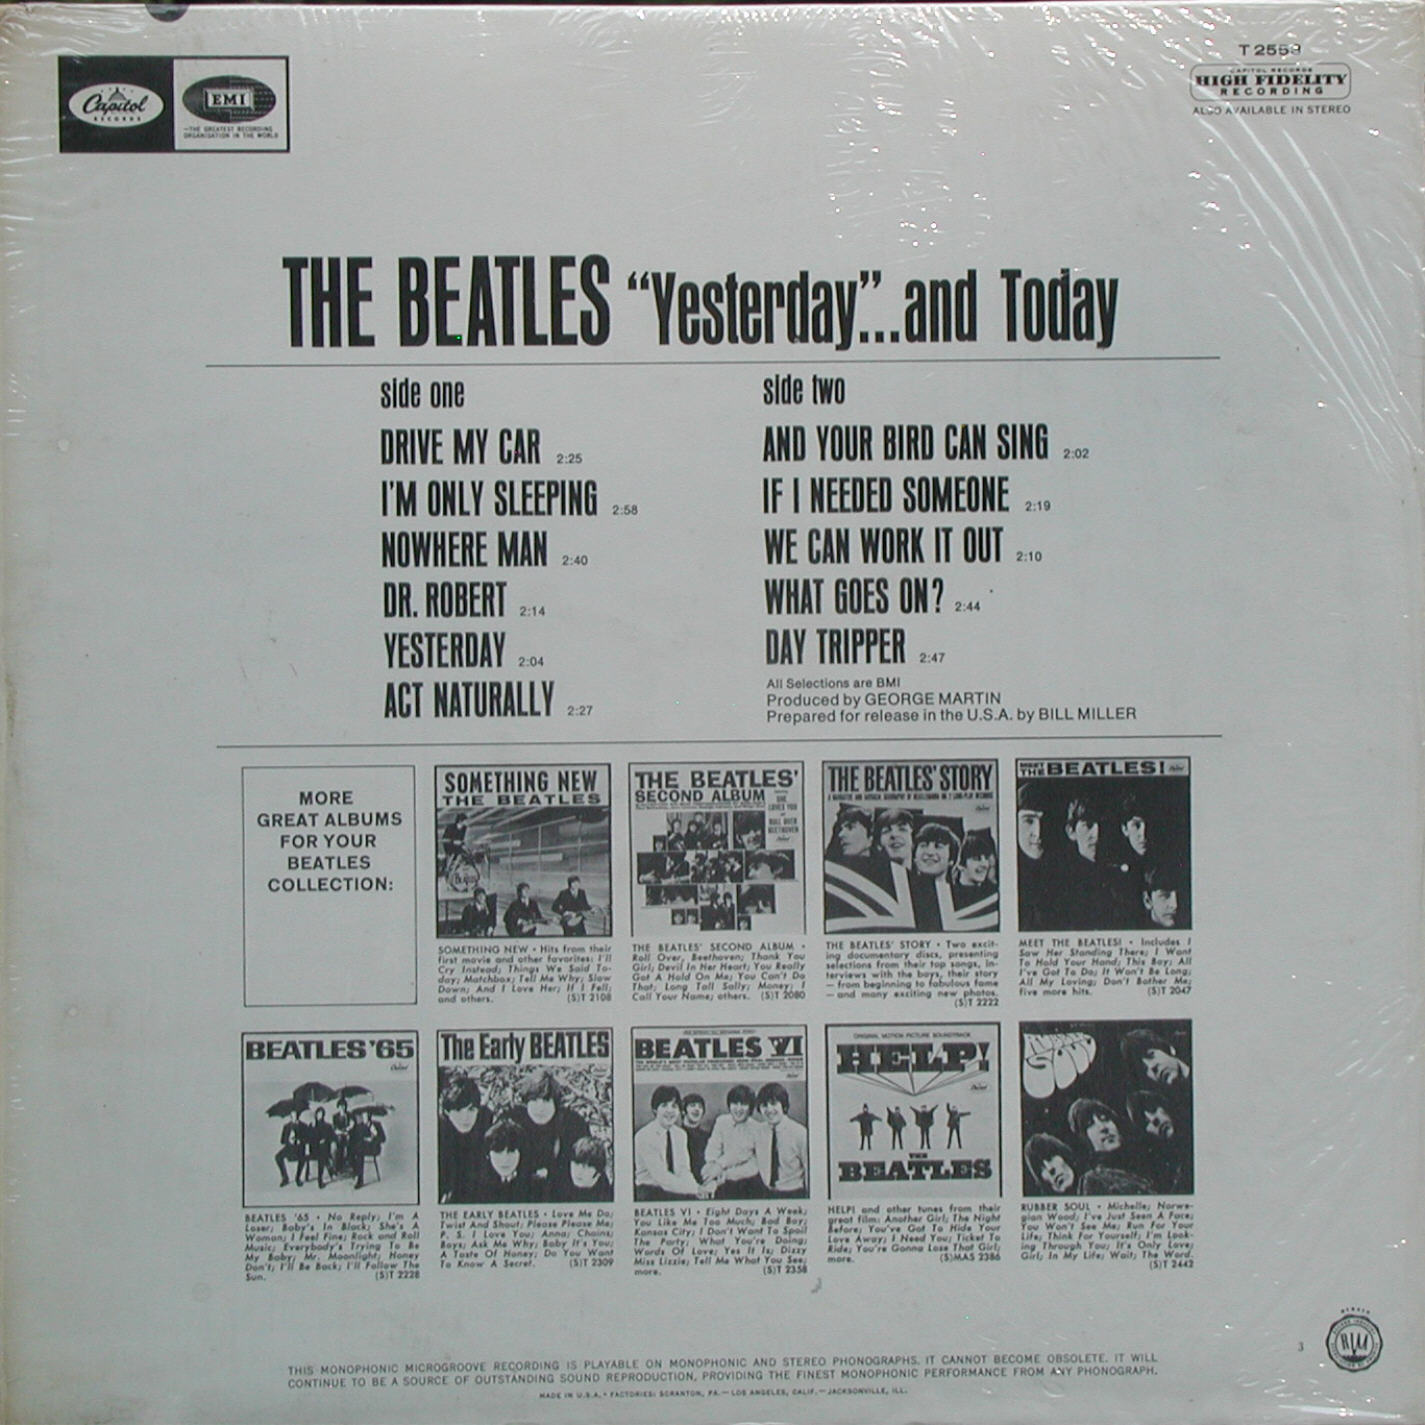 Capitol T 2553 Trunk Jacket Beatles Price Guide by McLenson